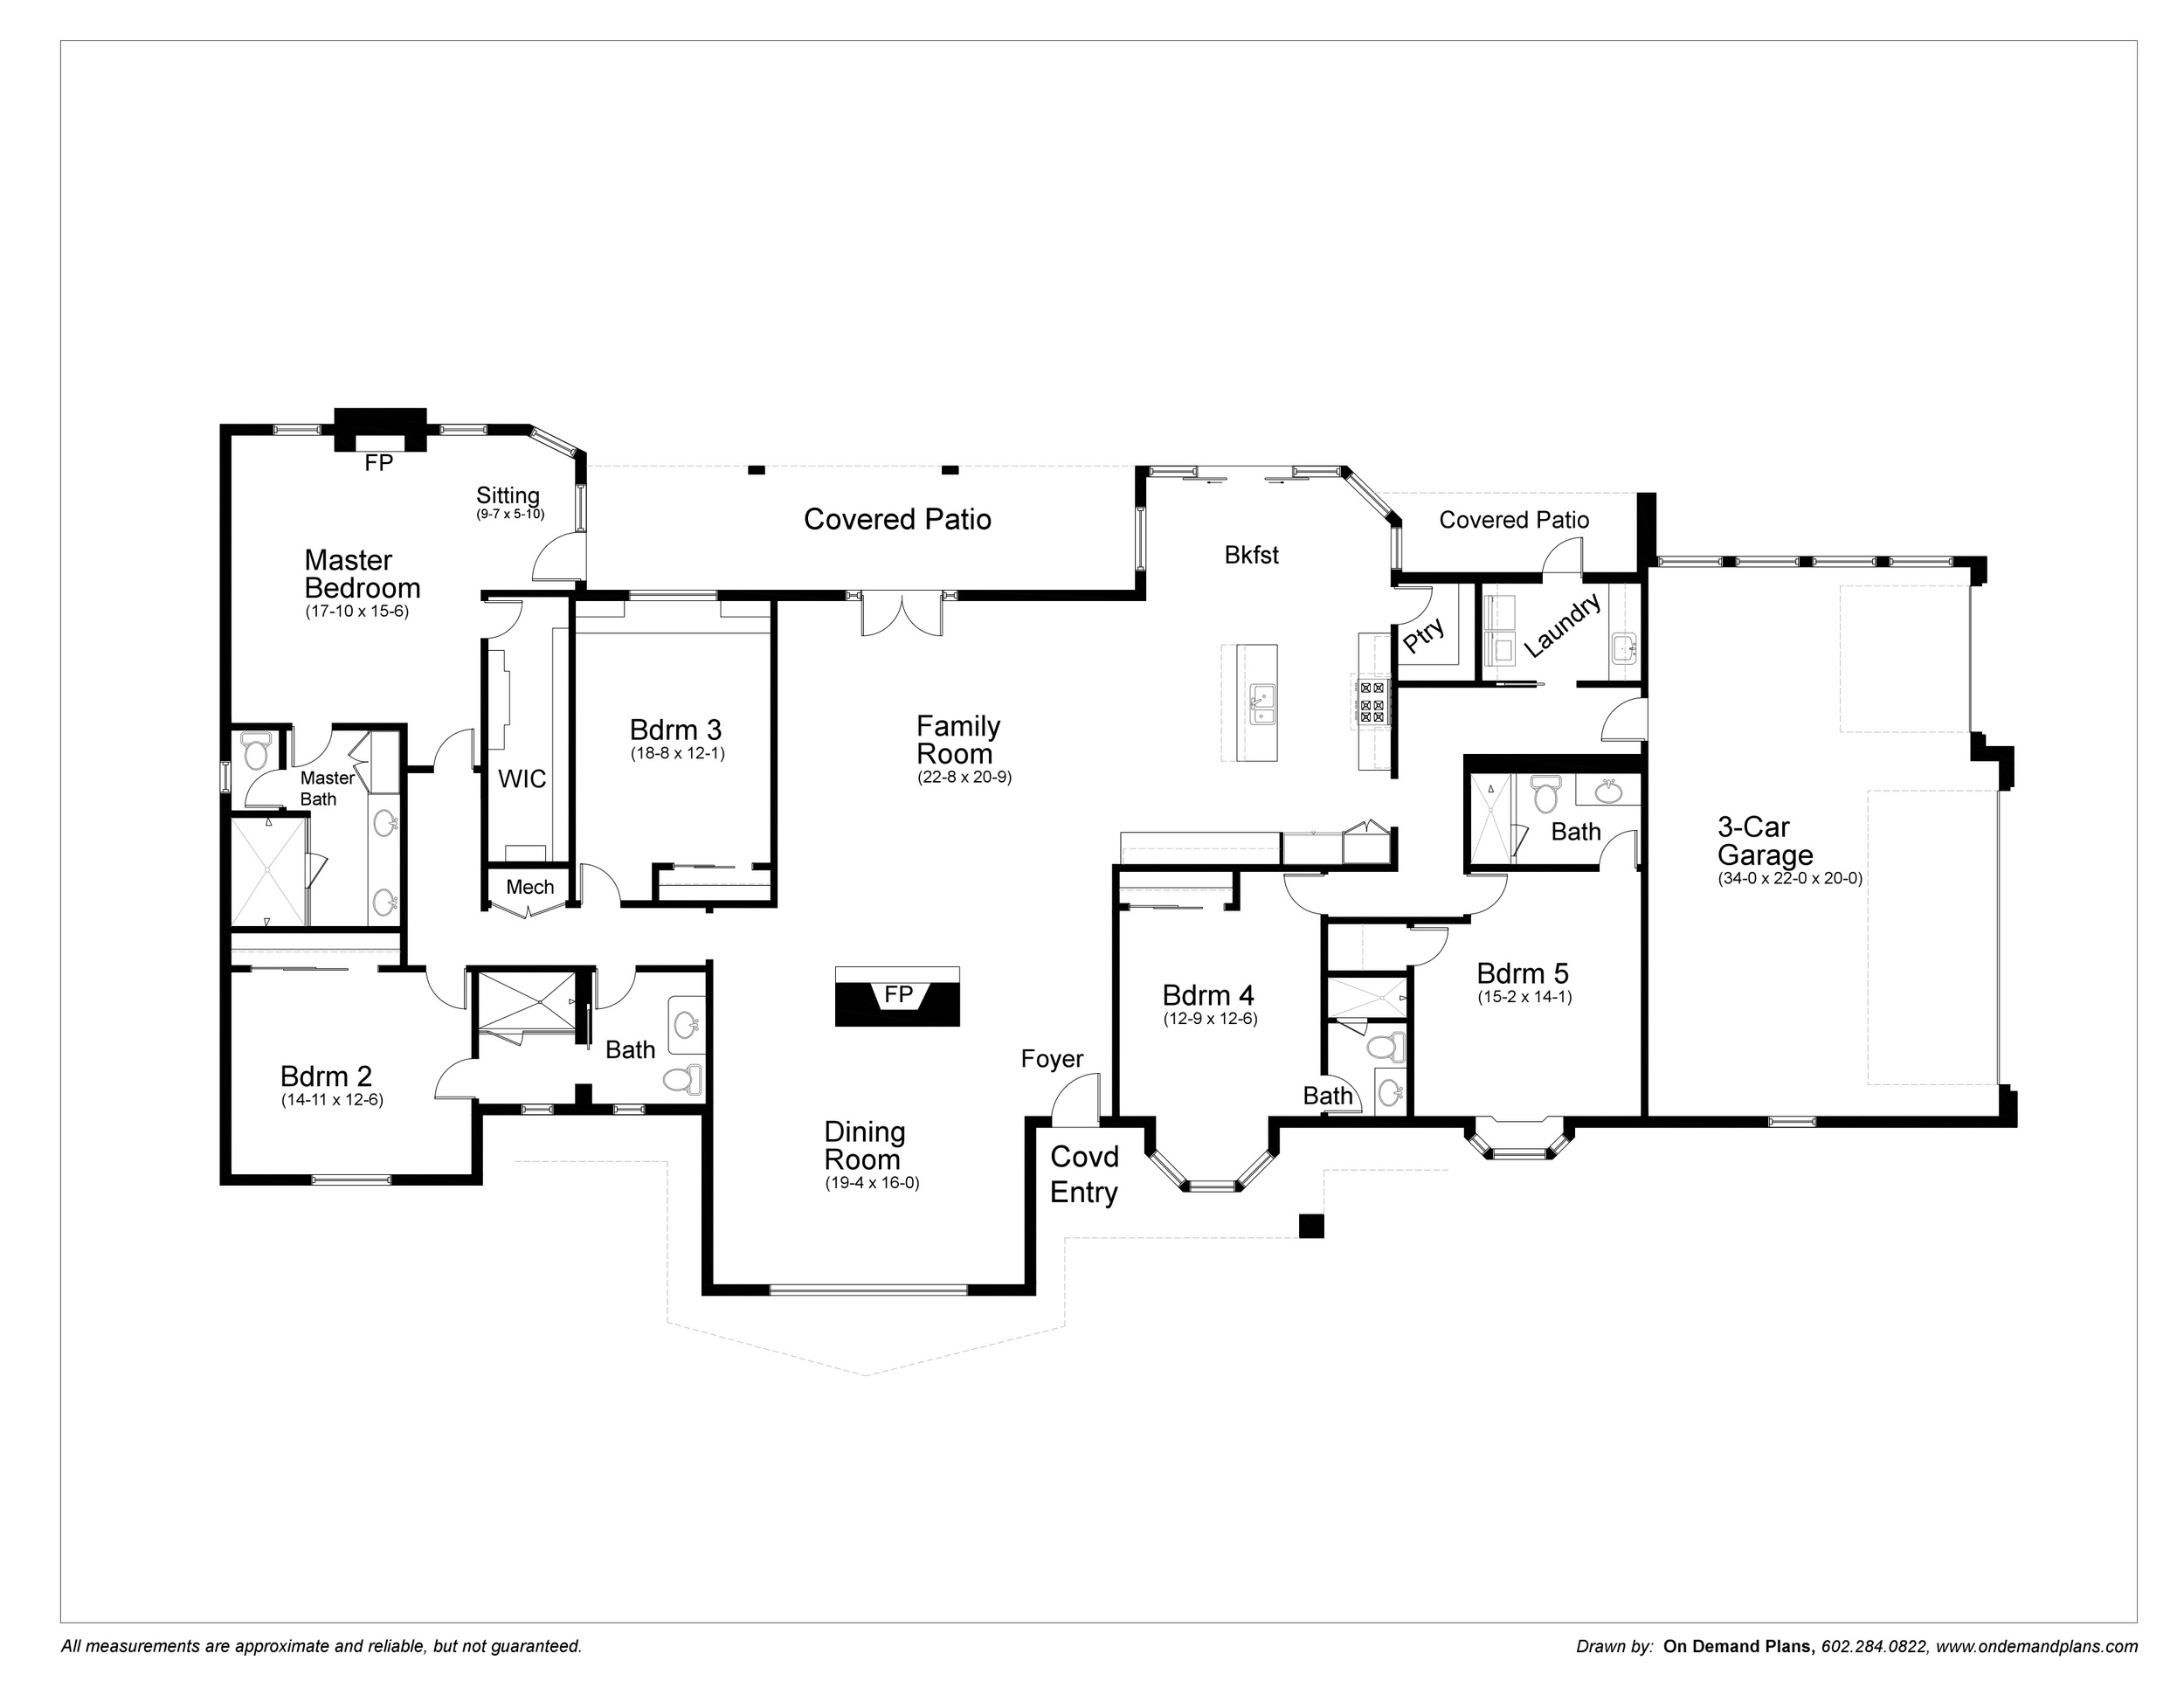 Revised Floor plan with 5 bedrooms, 4 baths